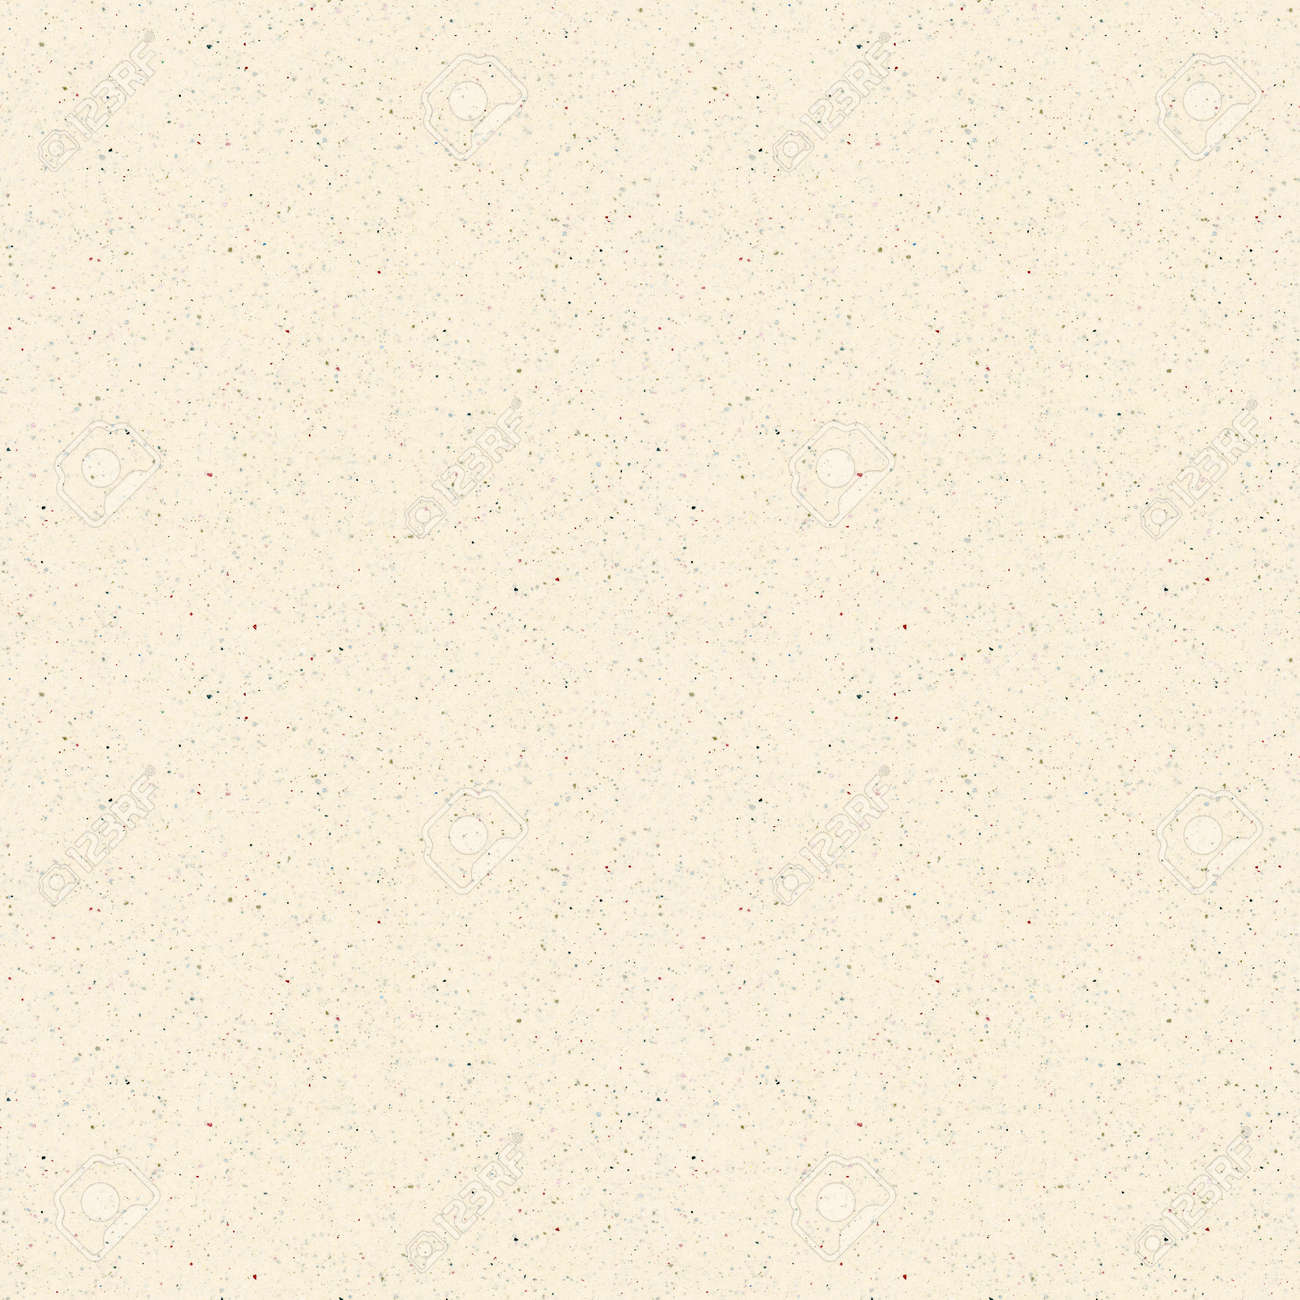 Recycled Speckled Paper Seamless Background Standard-Bild - 42934593